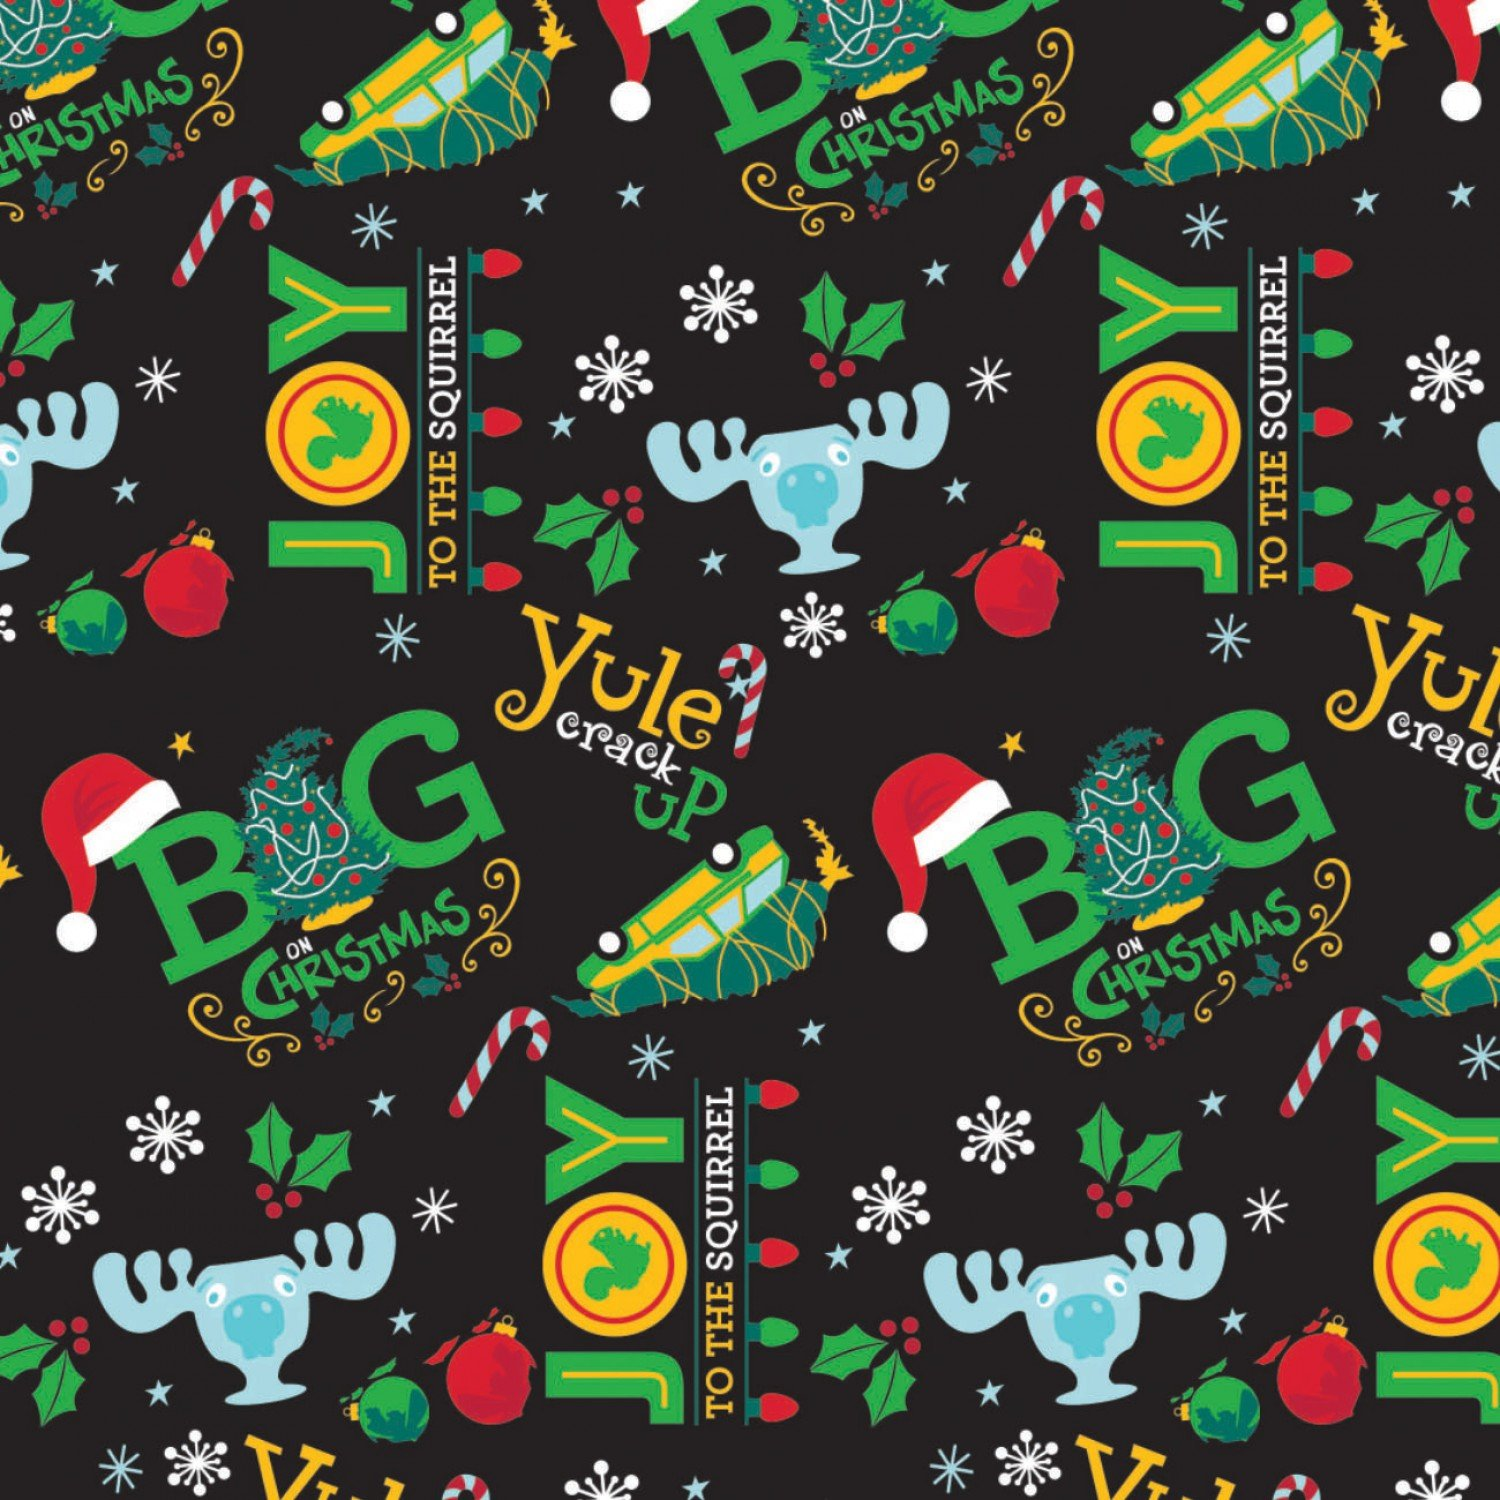 Character Winter Holiday 2 Christmas Vacation Big Christmas on Black Fabric by the Yard